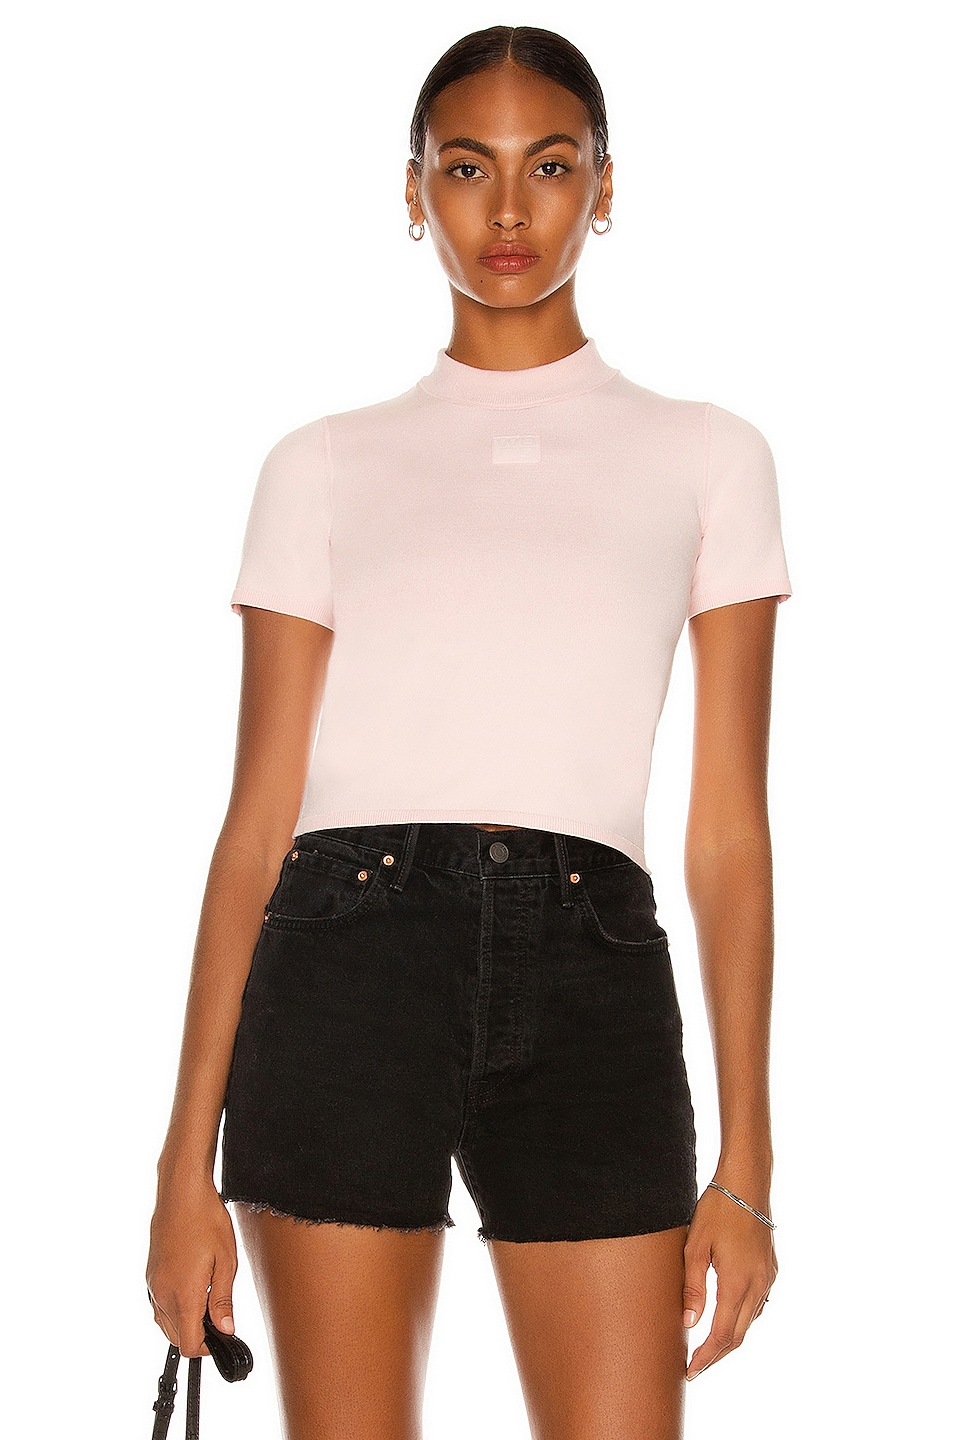 Image 1 of T by Alexander Wang Foundation Mock Neck Tee in Crystal Rose